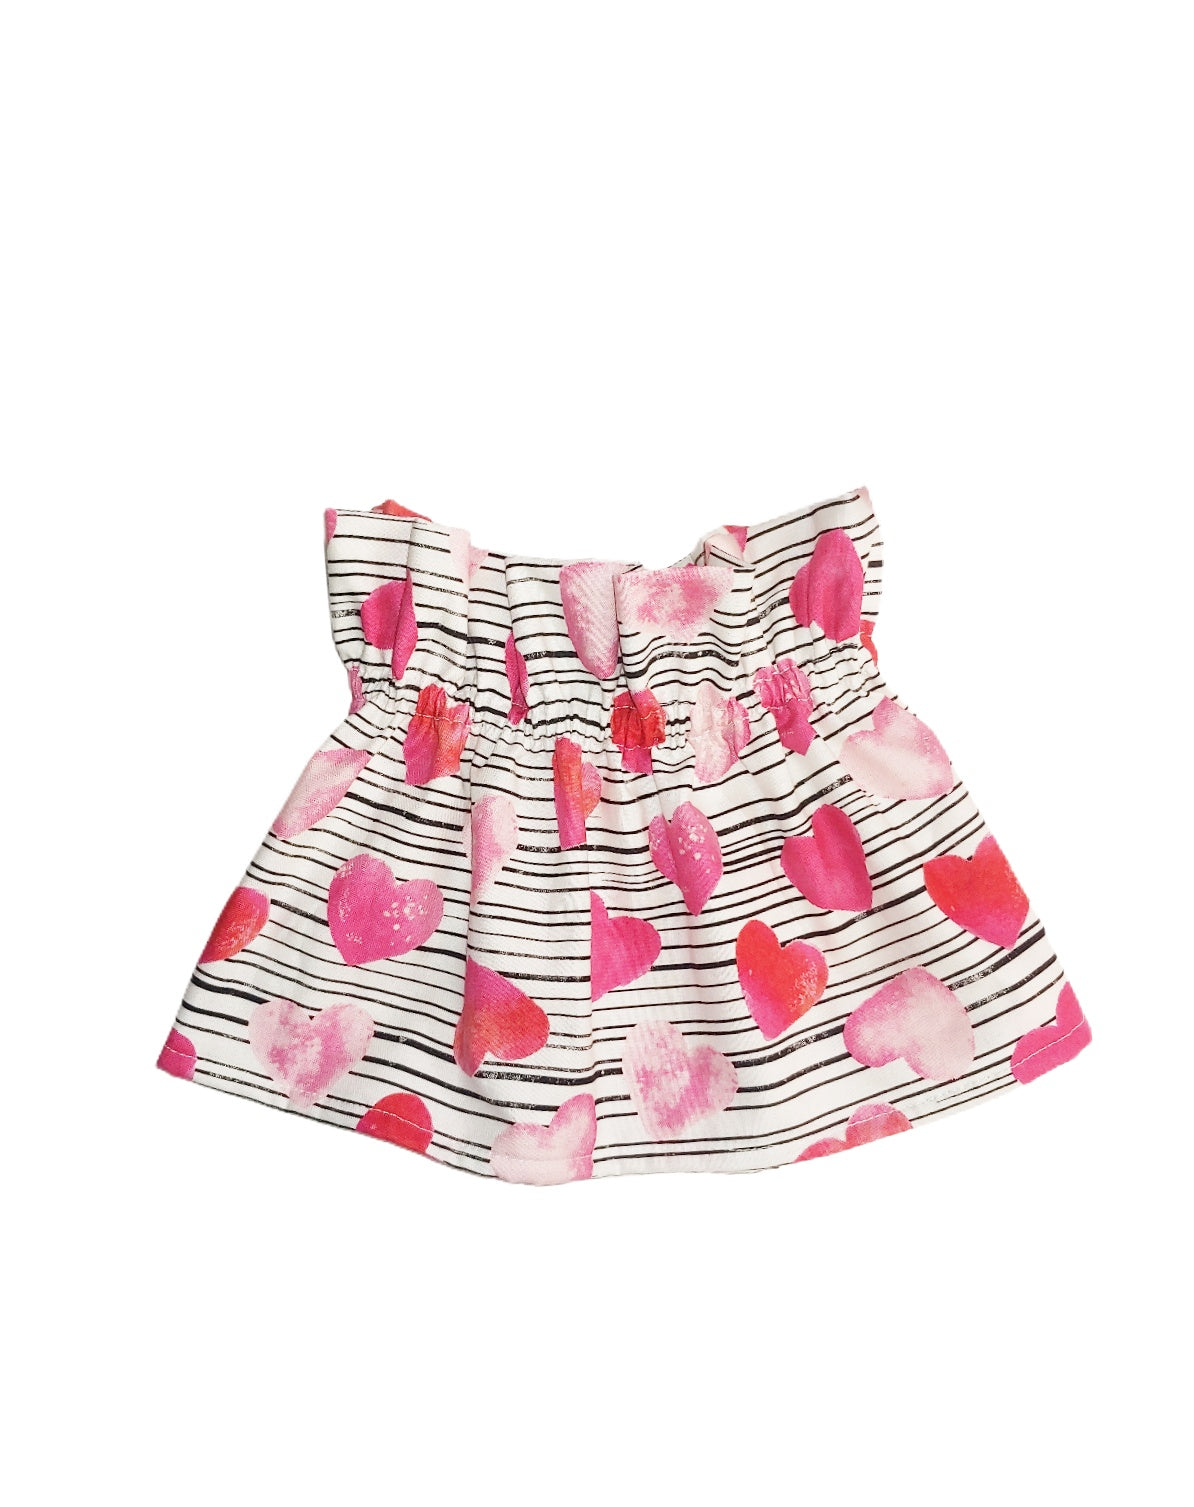 Pink Hearts & Stripes Paperbag Skirt (READY TO SHIP)